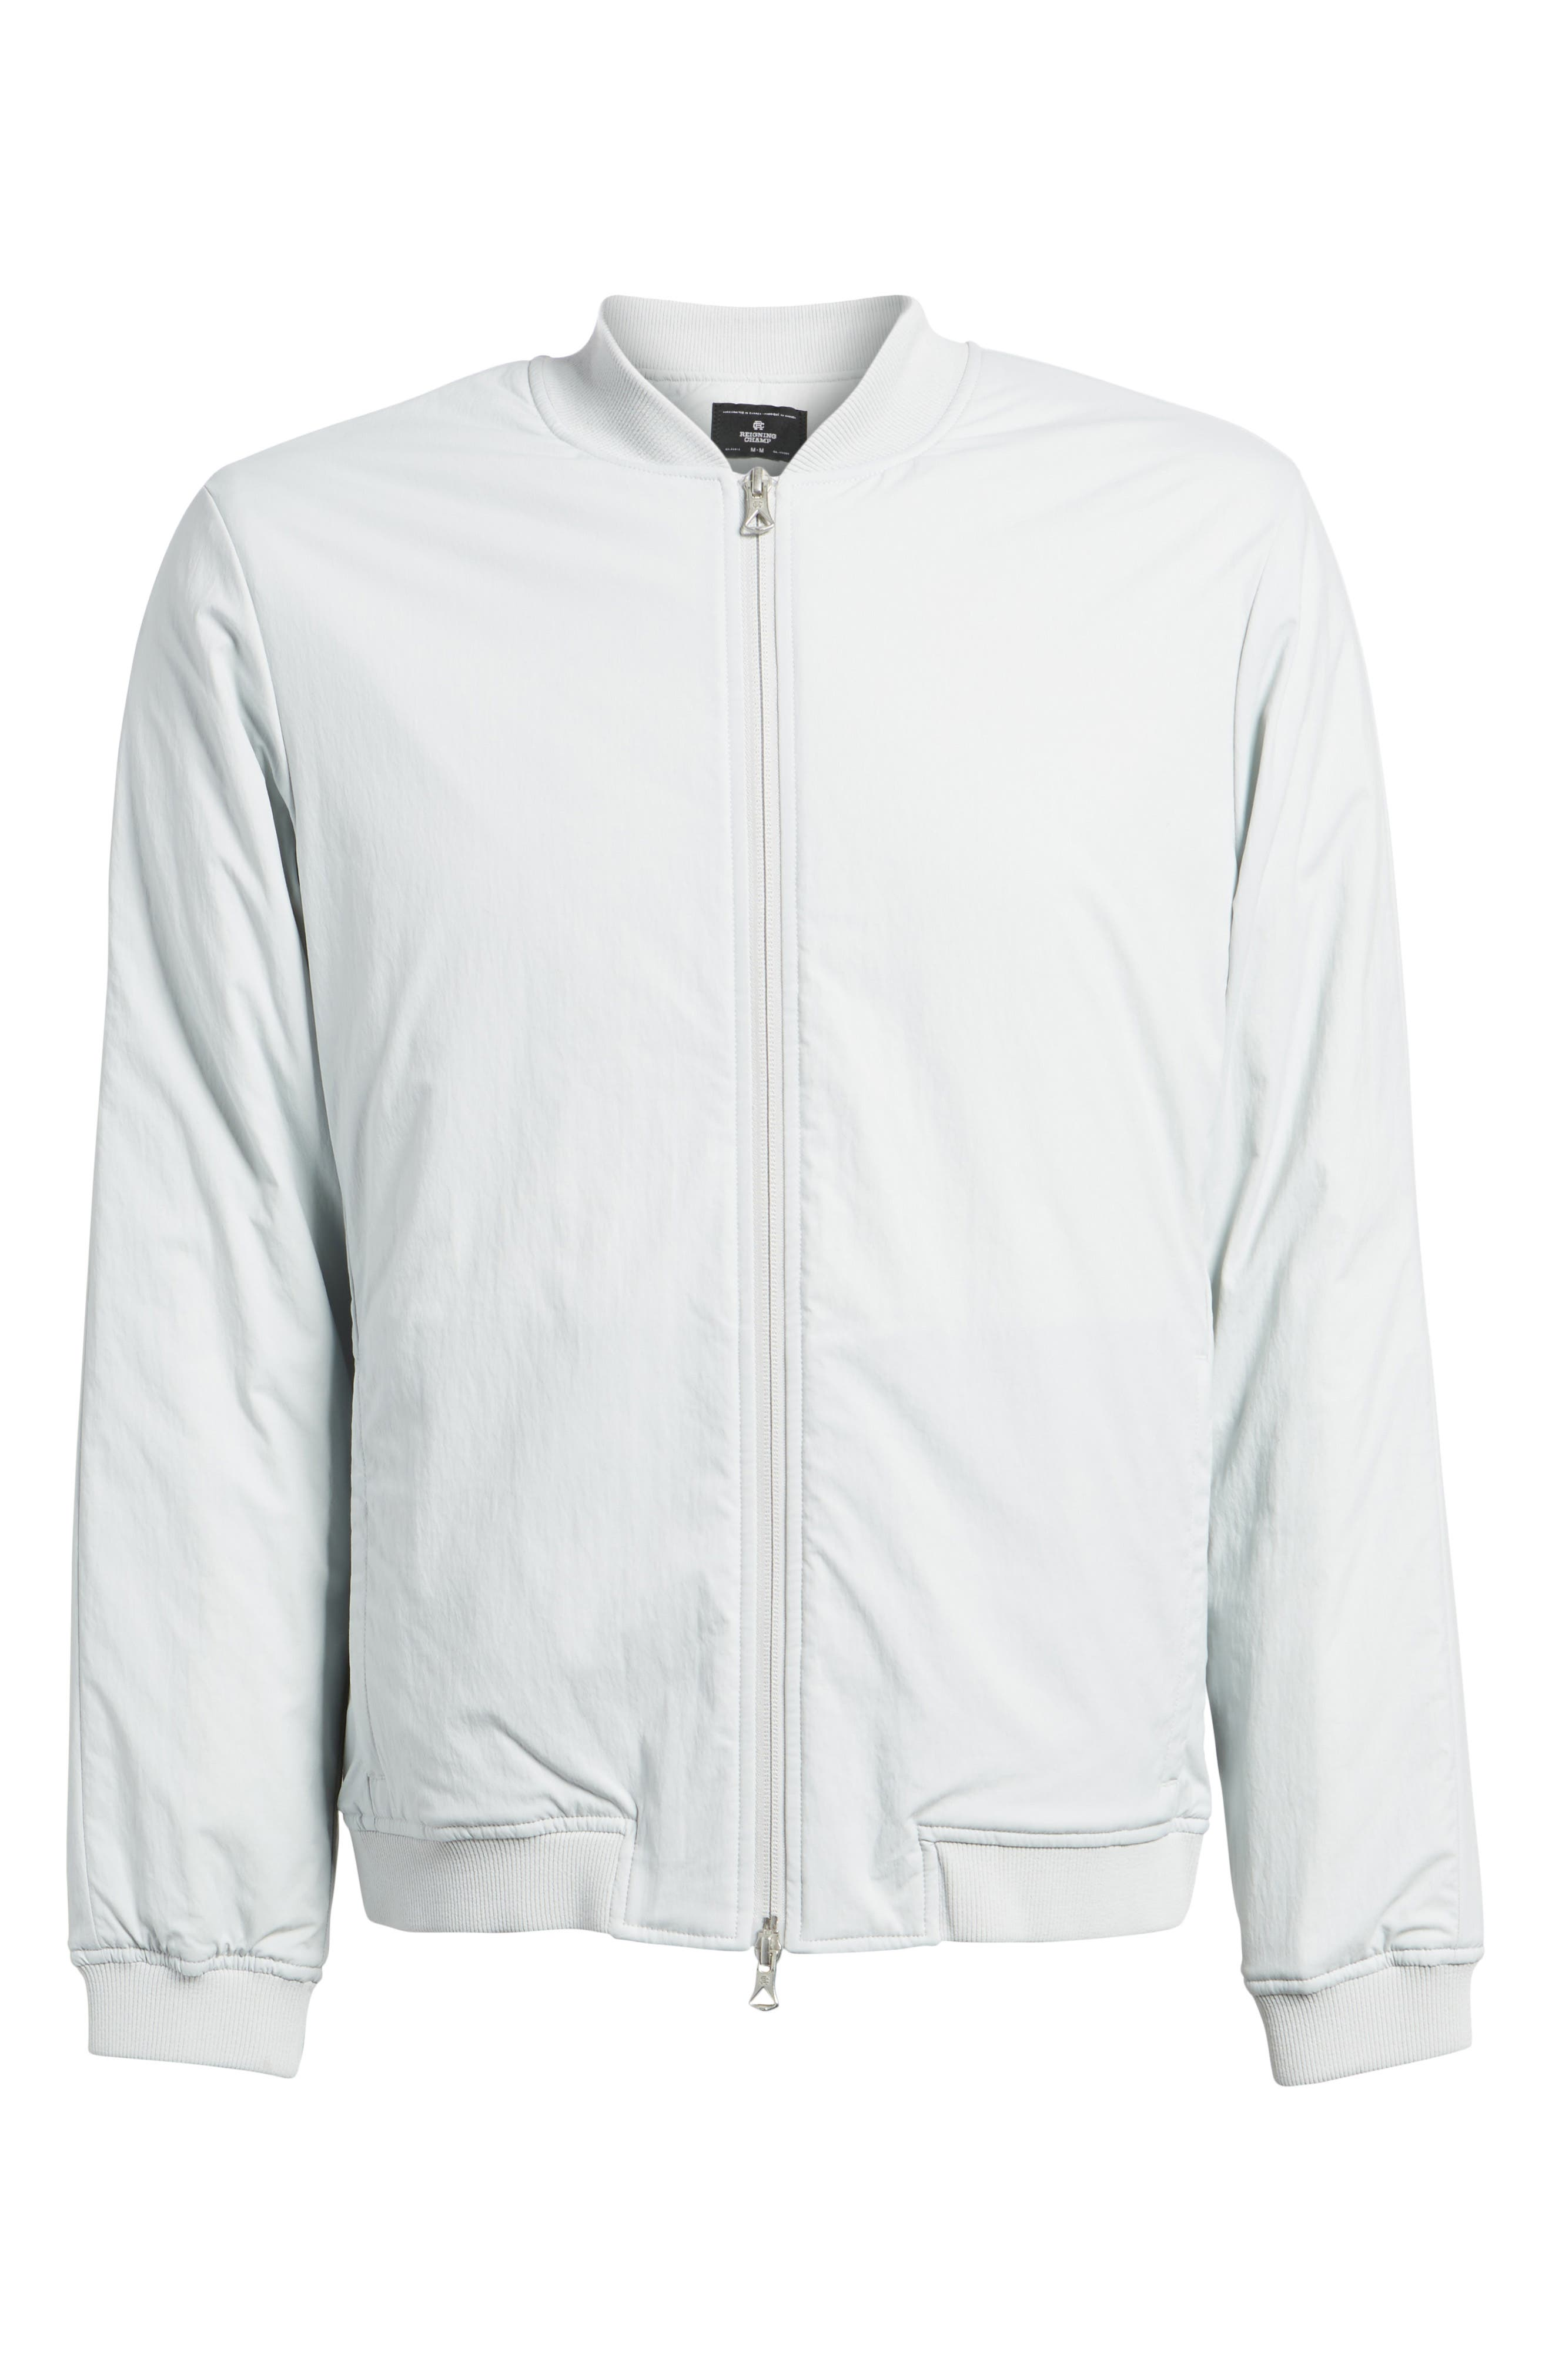 Insulated Bomber Jacket,                             Alternate thumbnail 6, color,                             Sky Grey